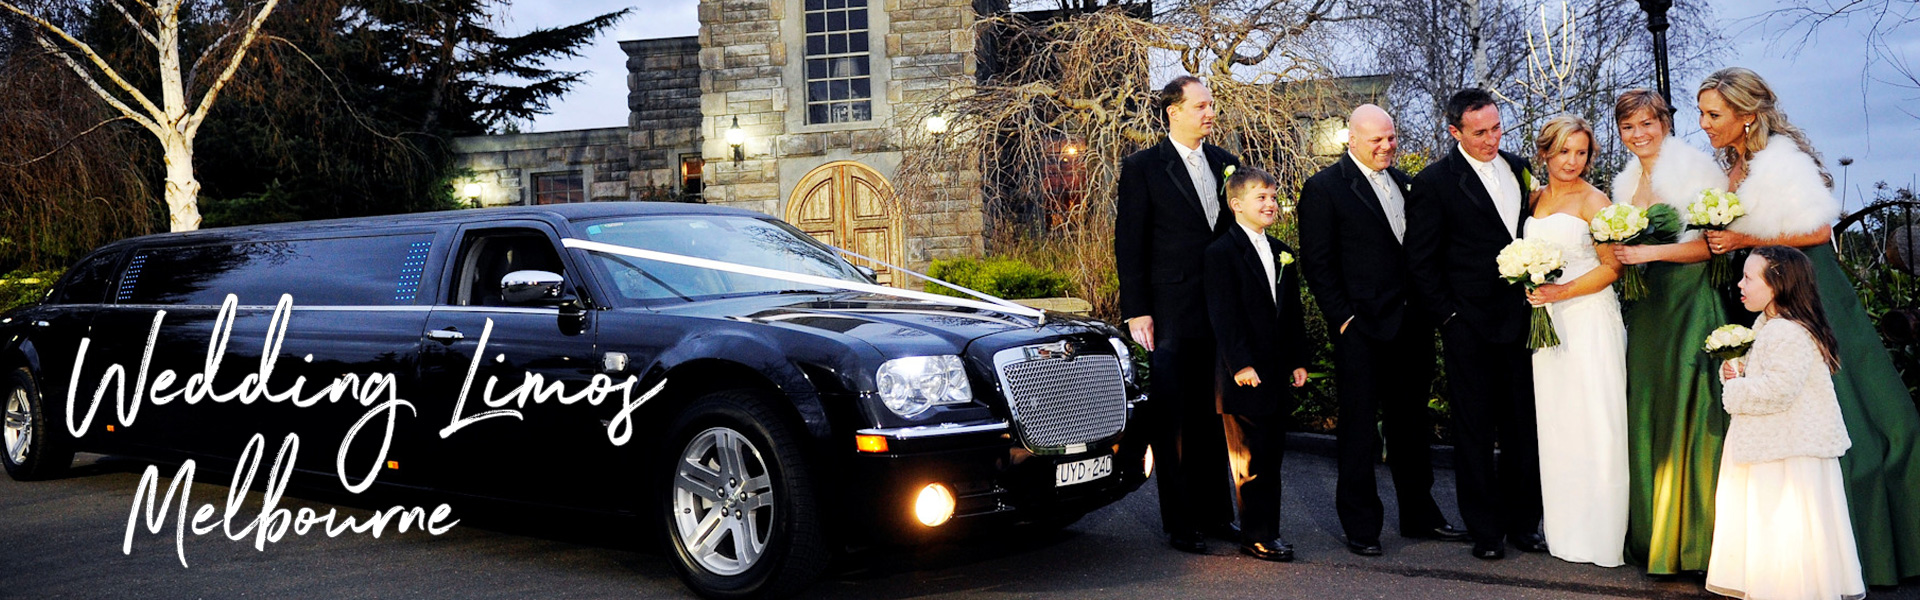 Wedding Limos Melbourne - Enrik Limousines